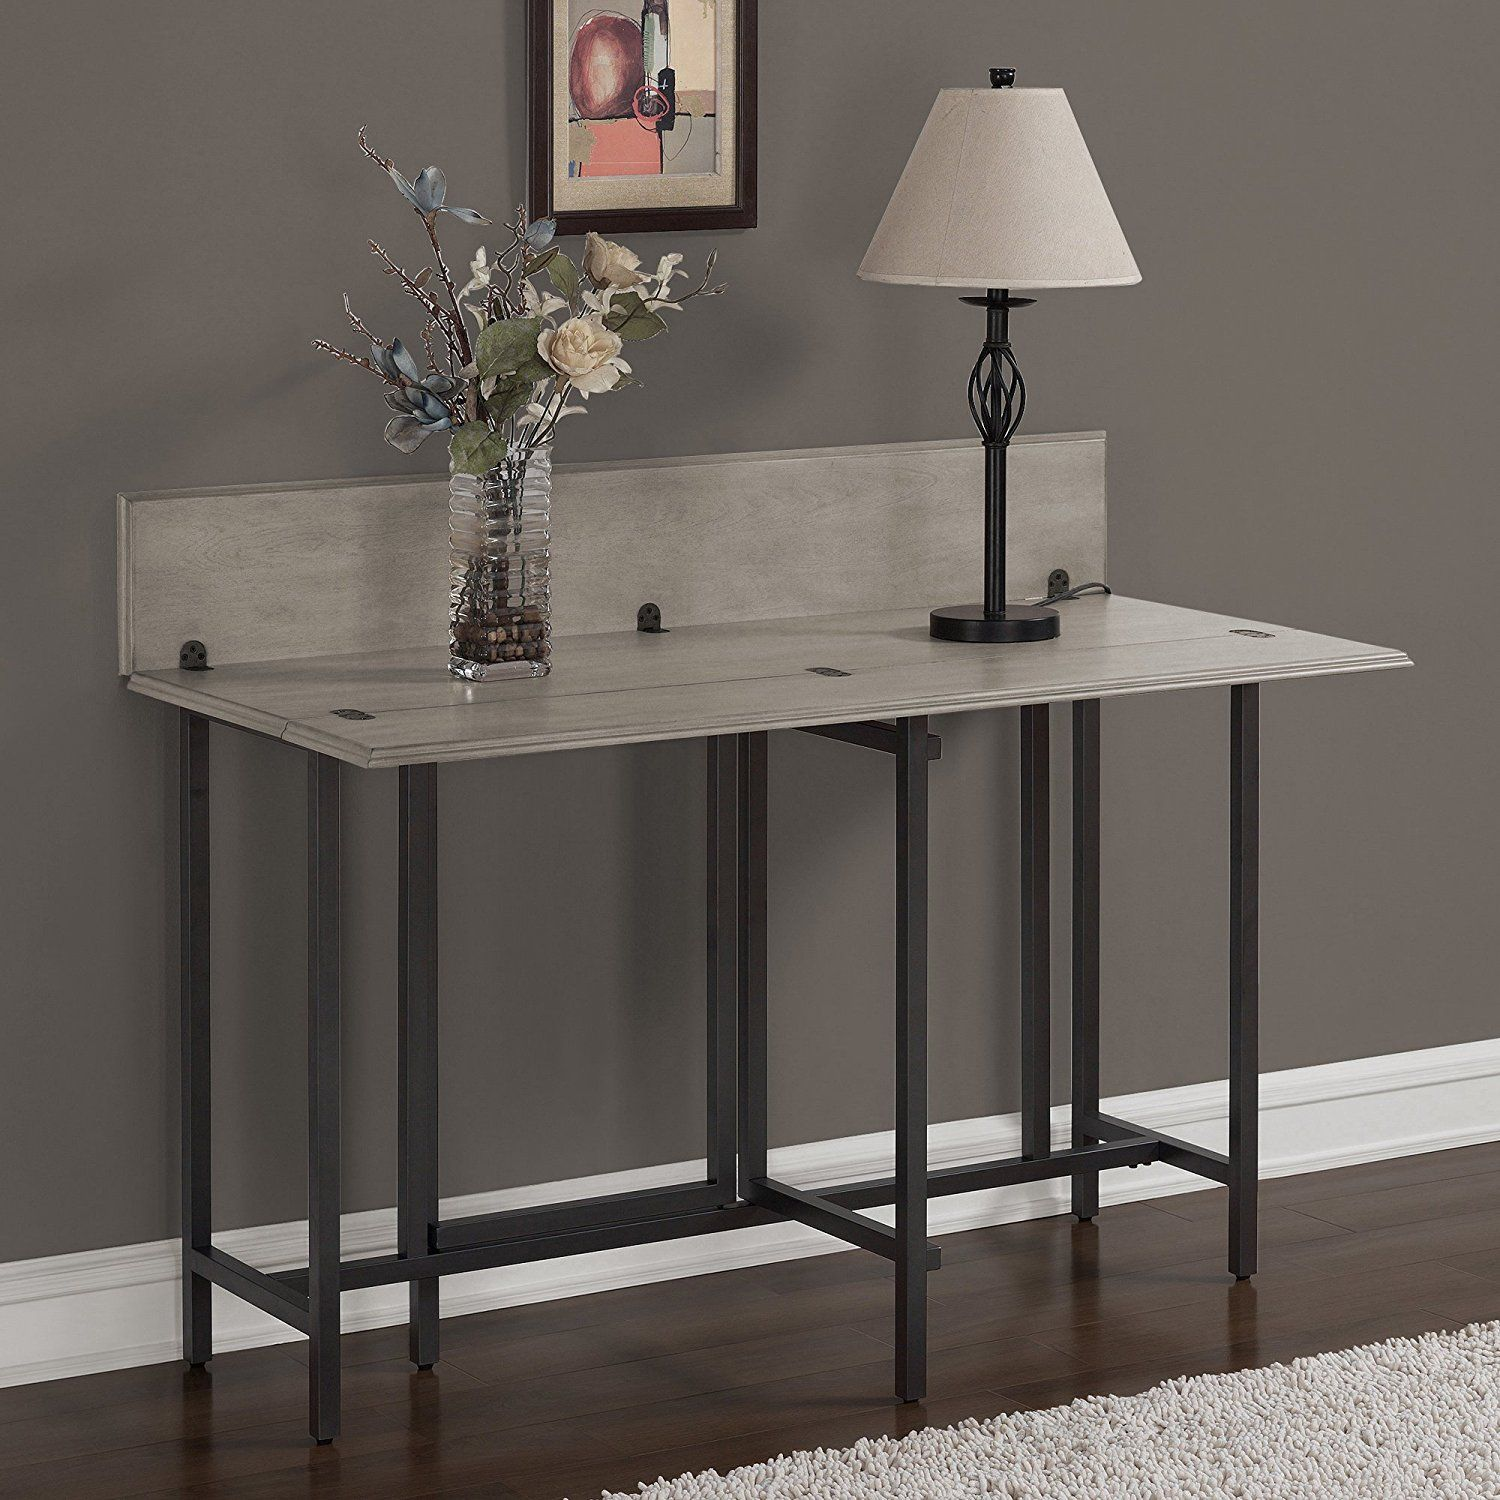 15 Small Dining Room Table Ideas Tips: Convertible Dining Table Wood Contemporary